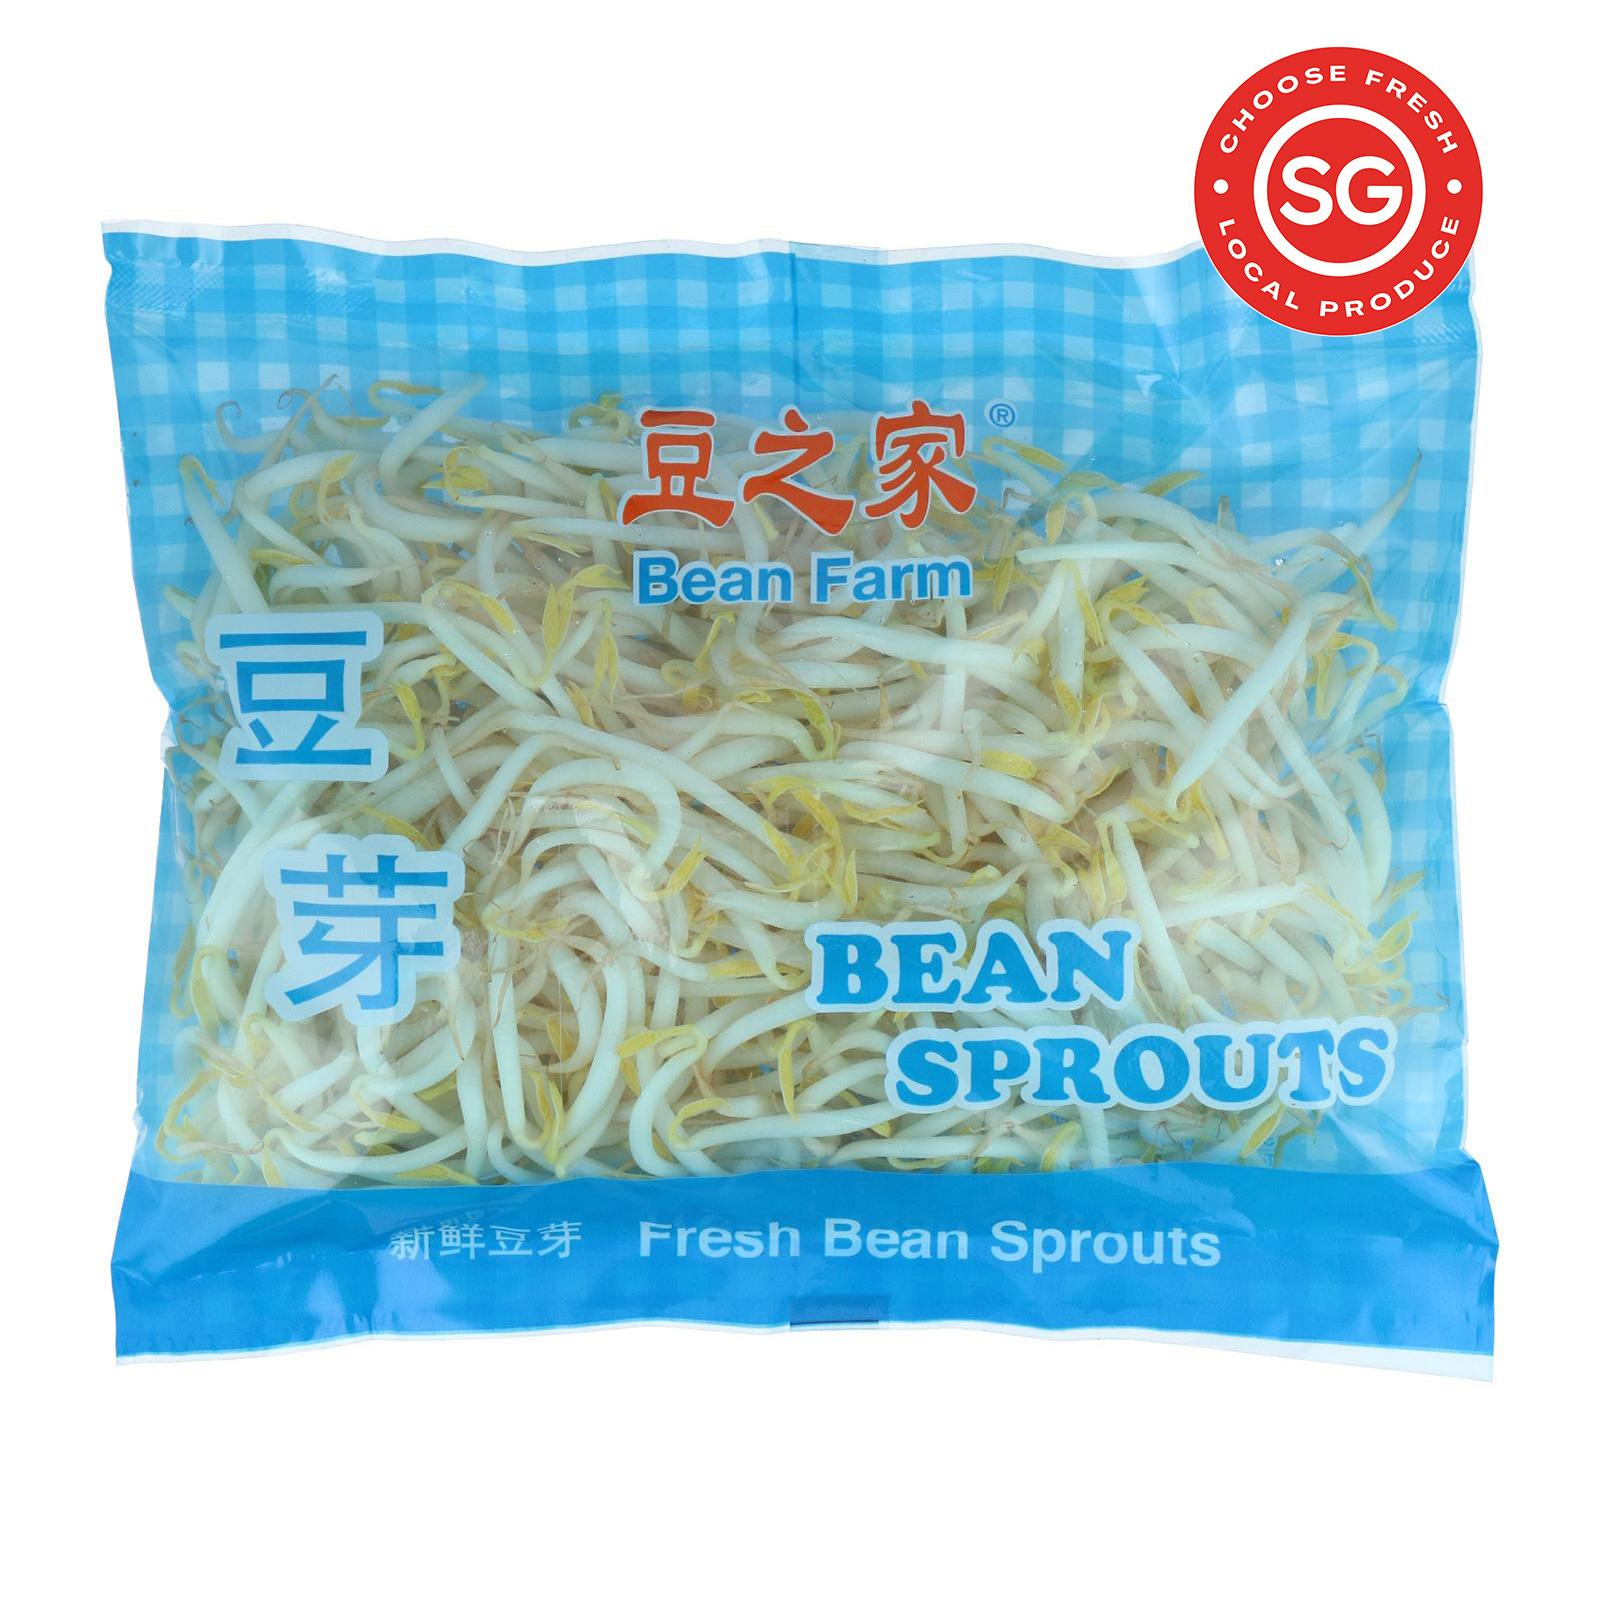 Bean Farm Bean Sprouts (Beansprouts)